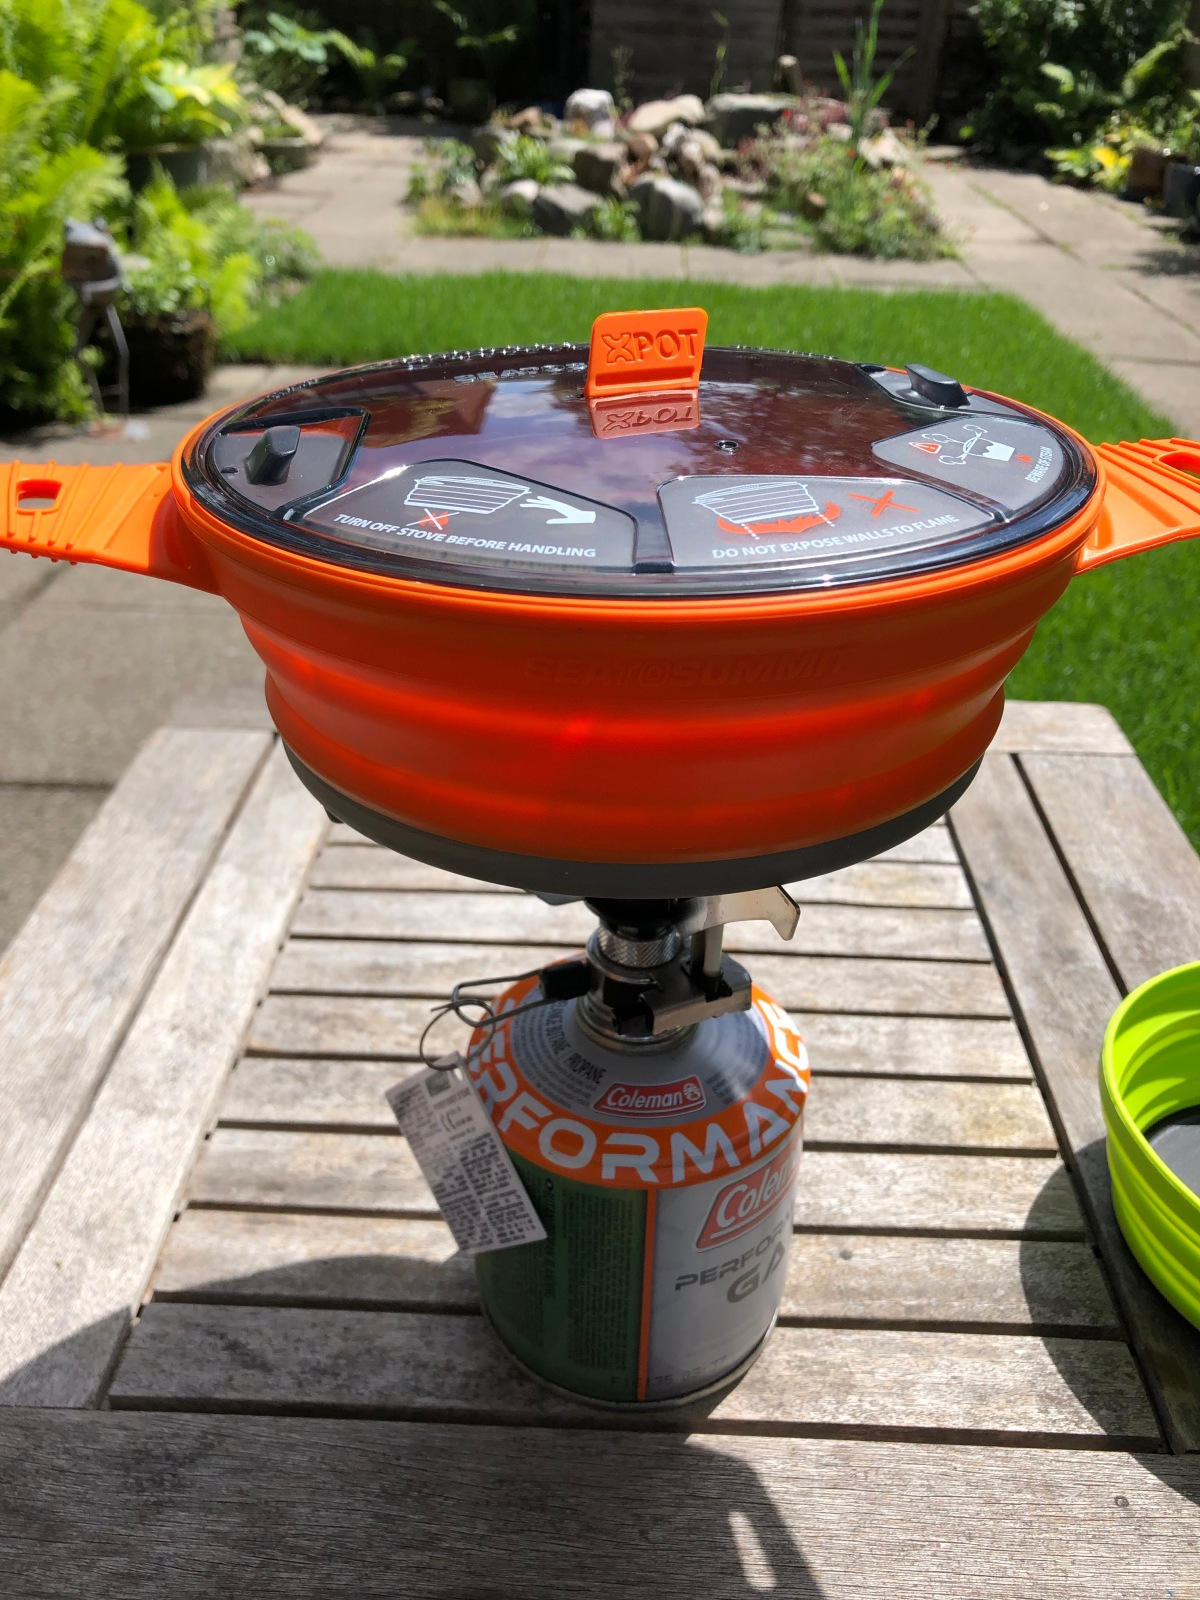 Fits well on the camp stove - Warning that lid must not be secured while cooking.